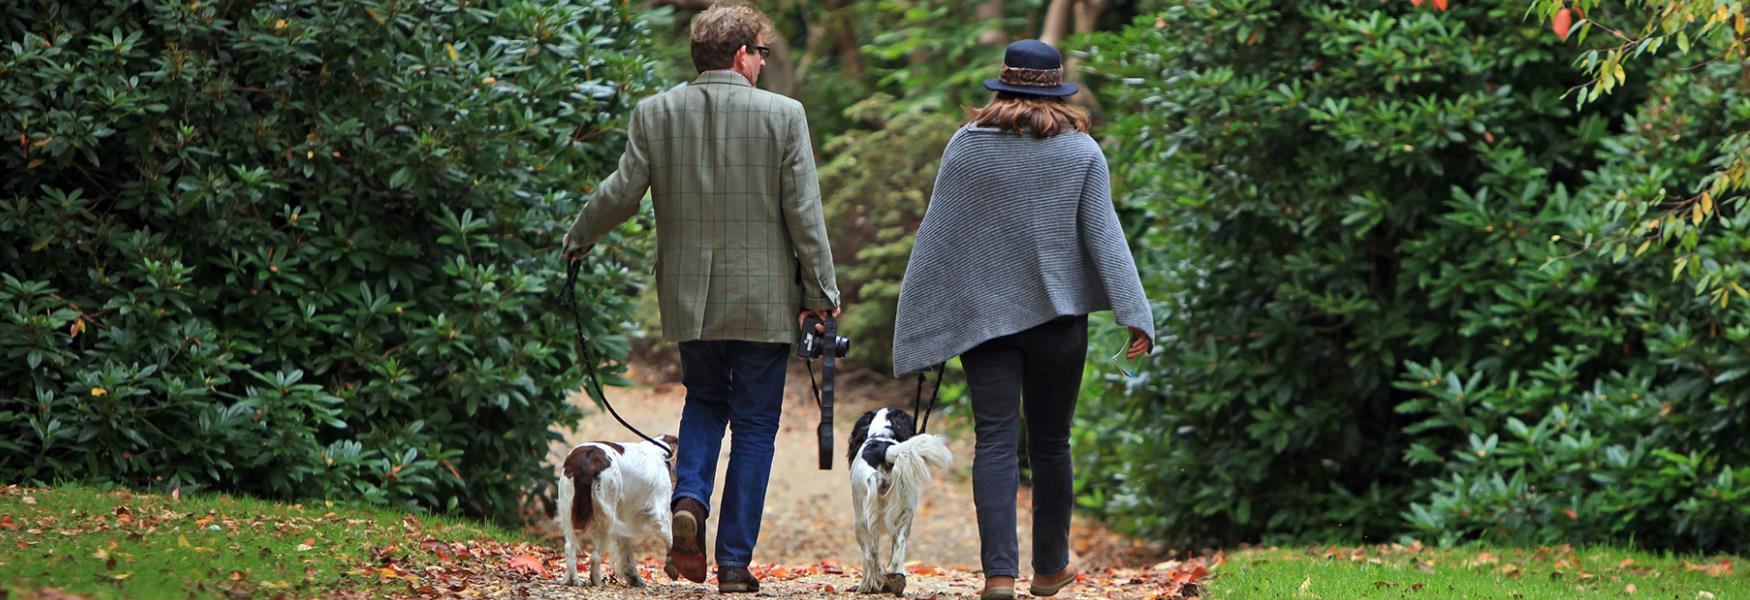 Dog Friendly Things to Do - Visit The New Forest